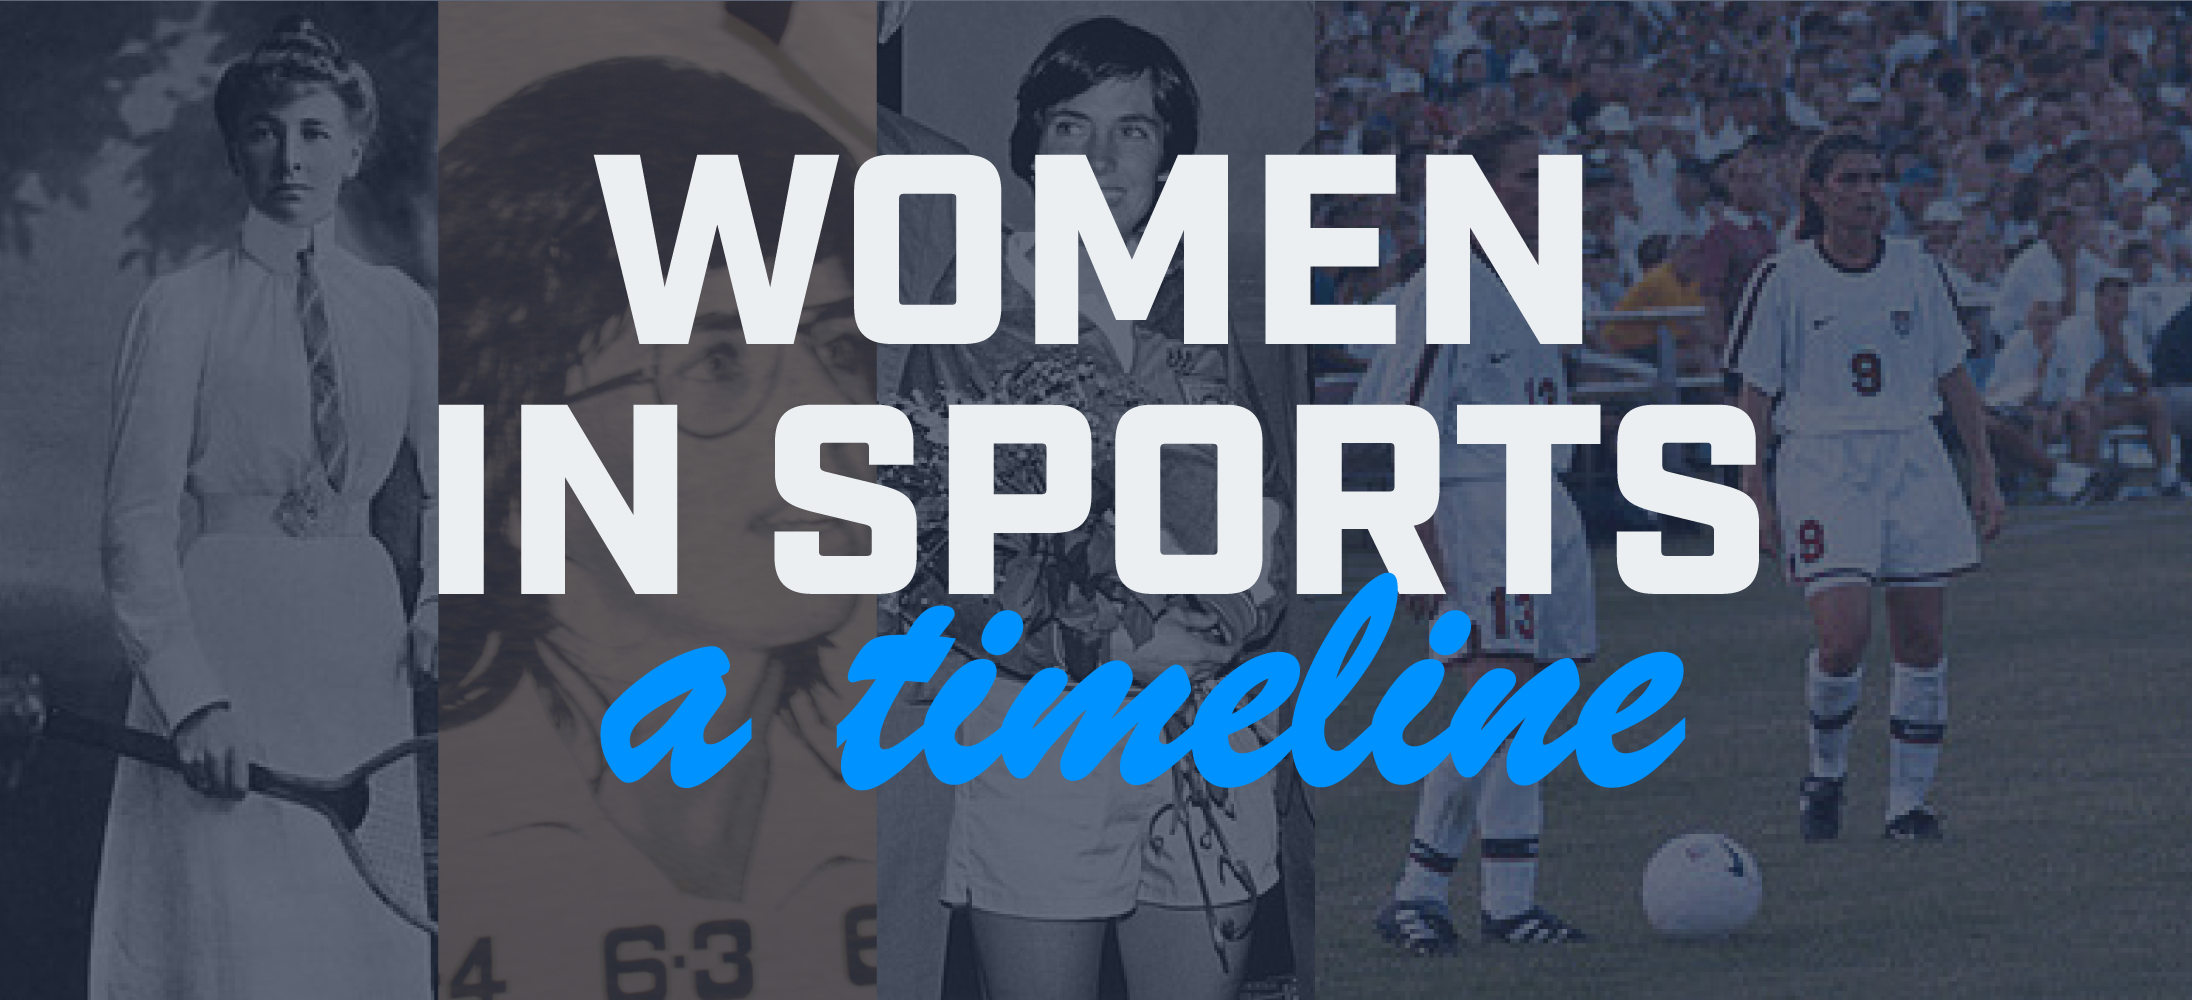 Women's History Month: Women in Sports Timeline